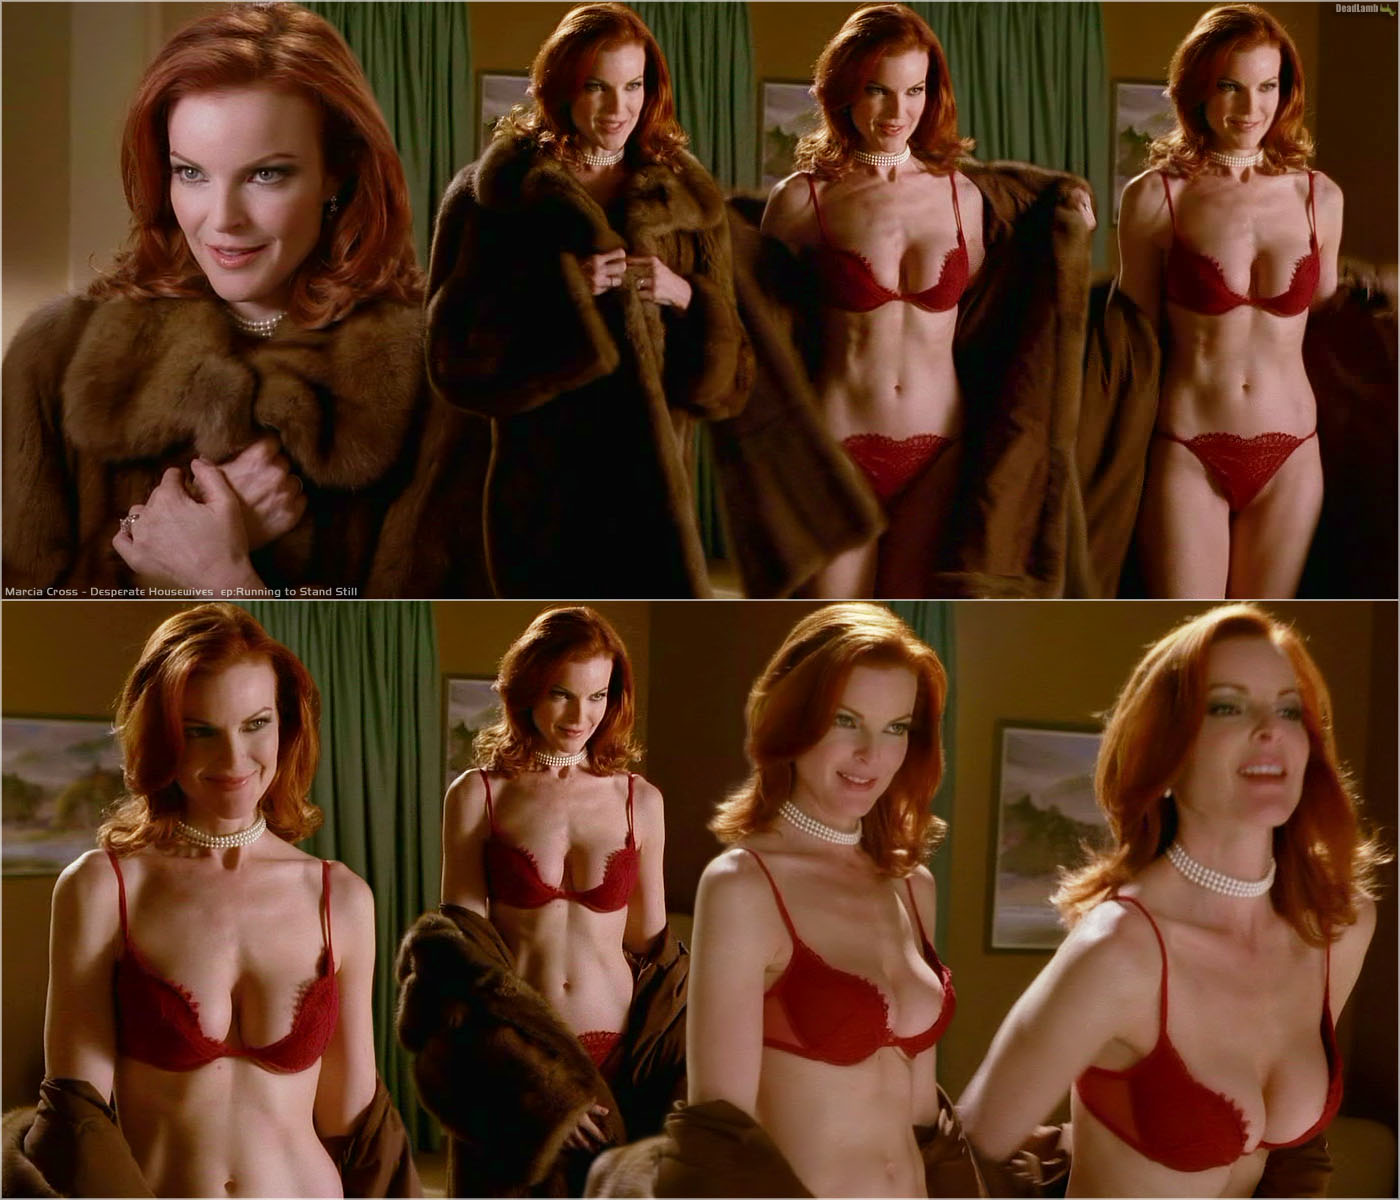 http://pictures.platinum-celebs.com/marcia-cross-nude-photo.jpg